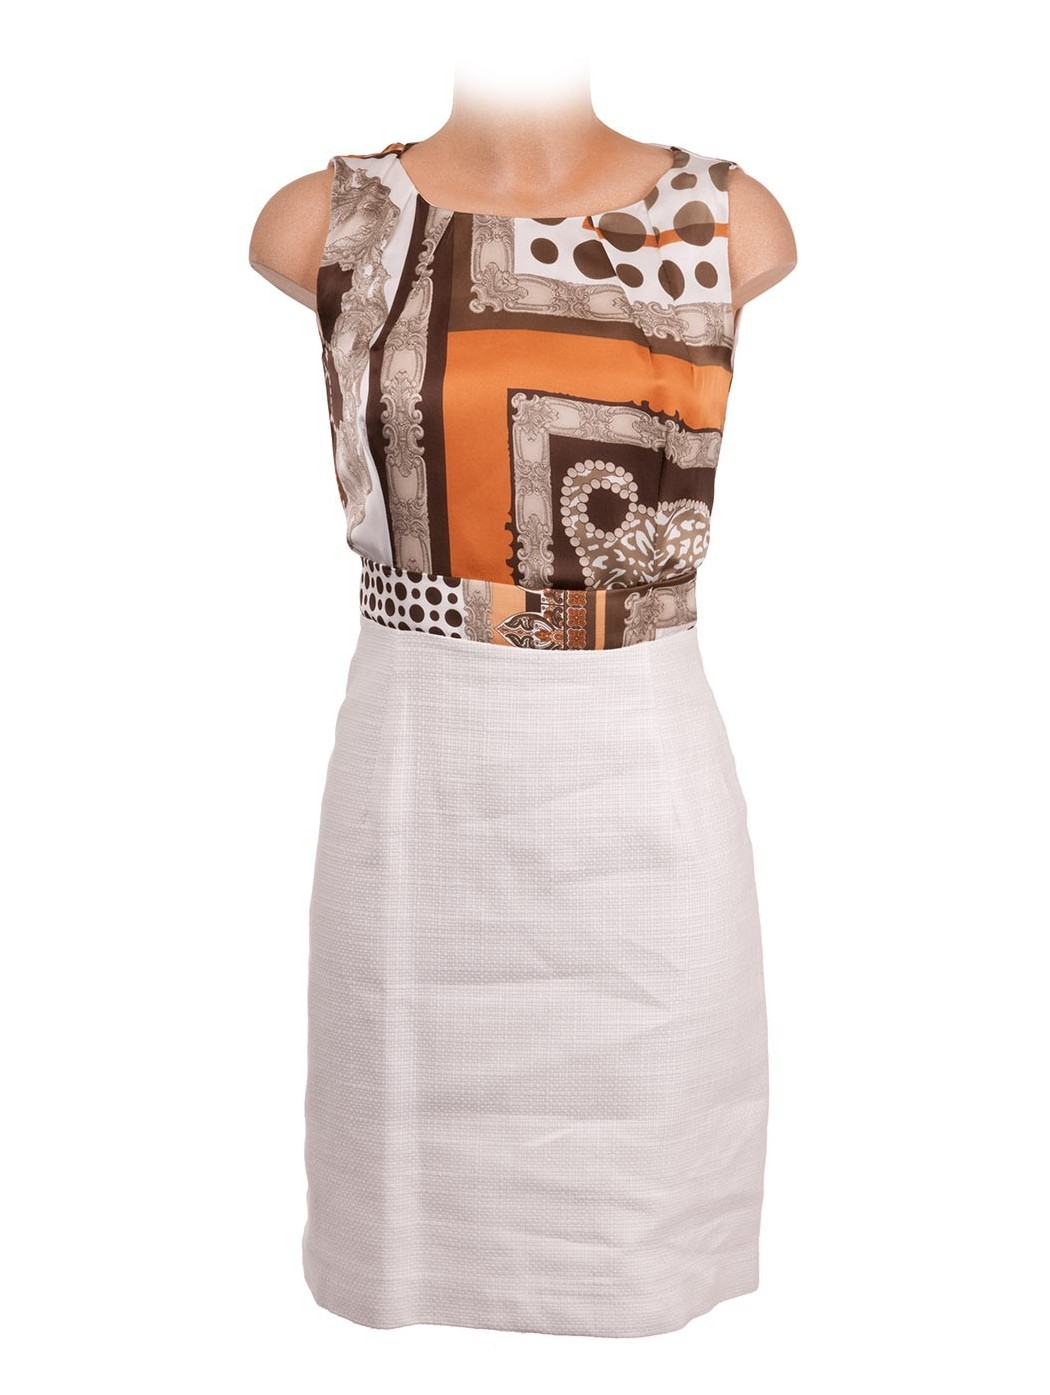 Luca Giordani white dress